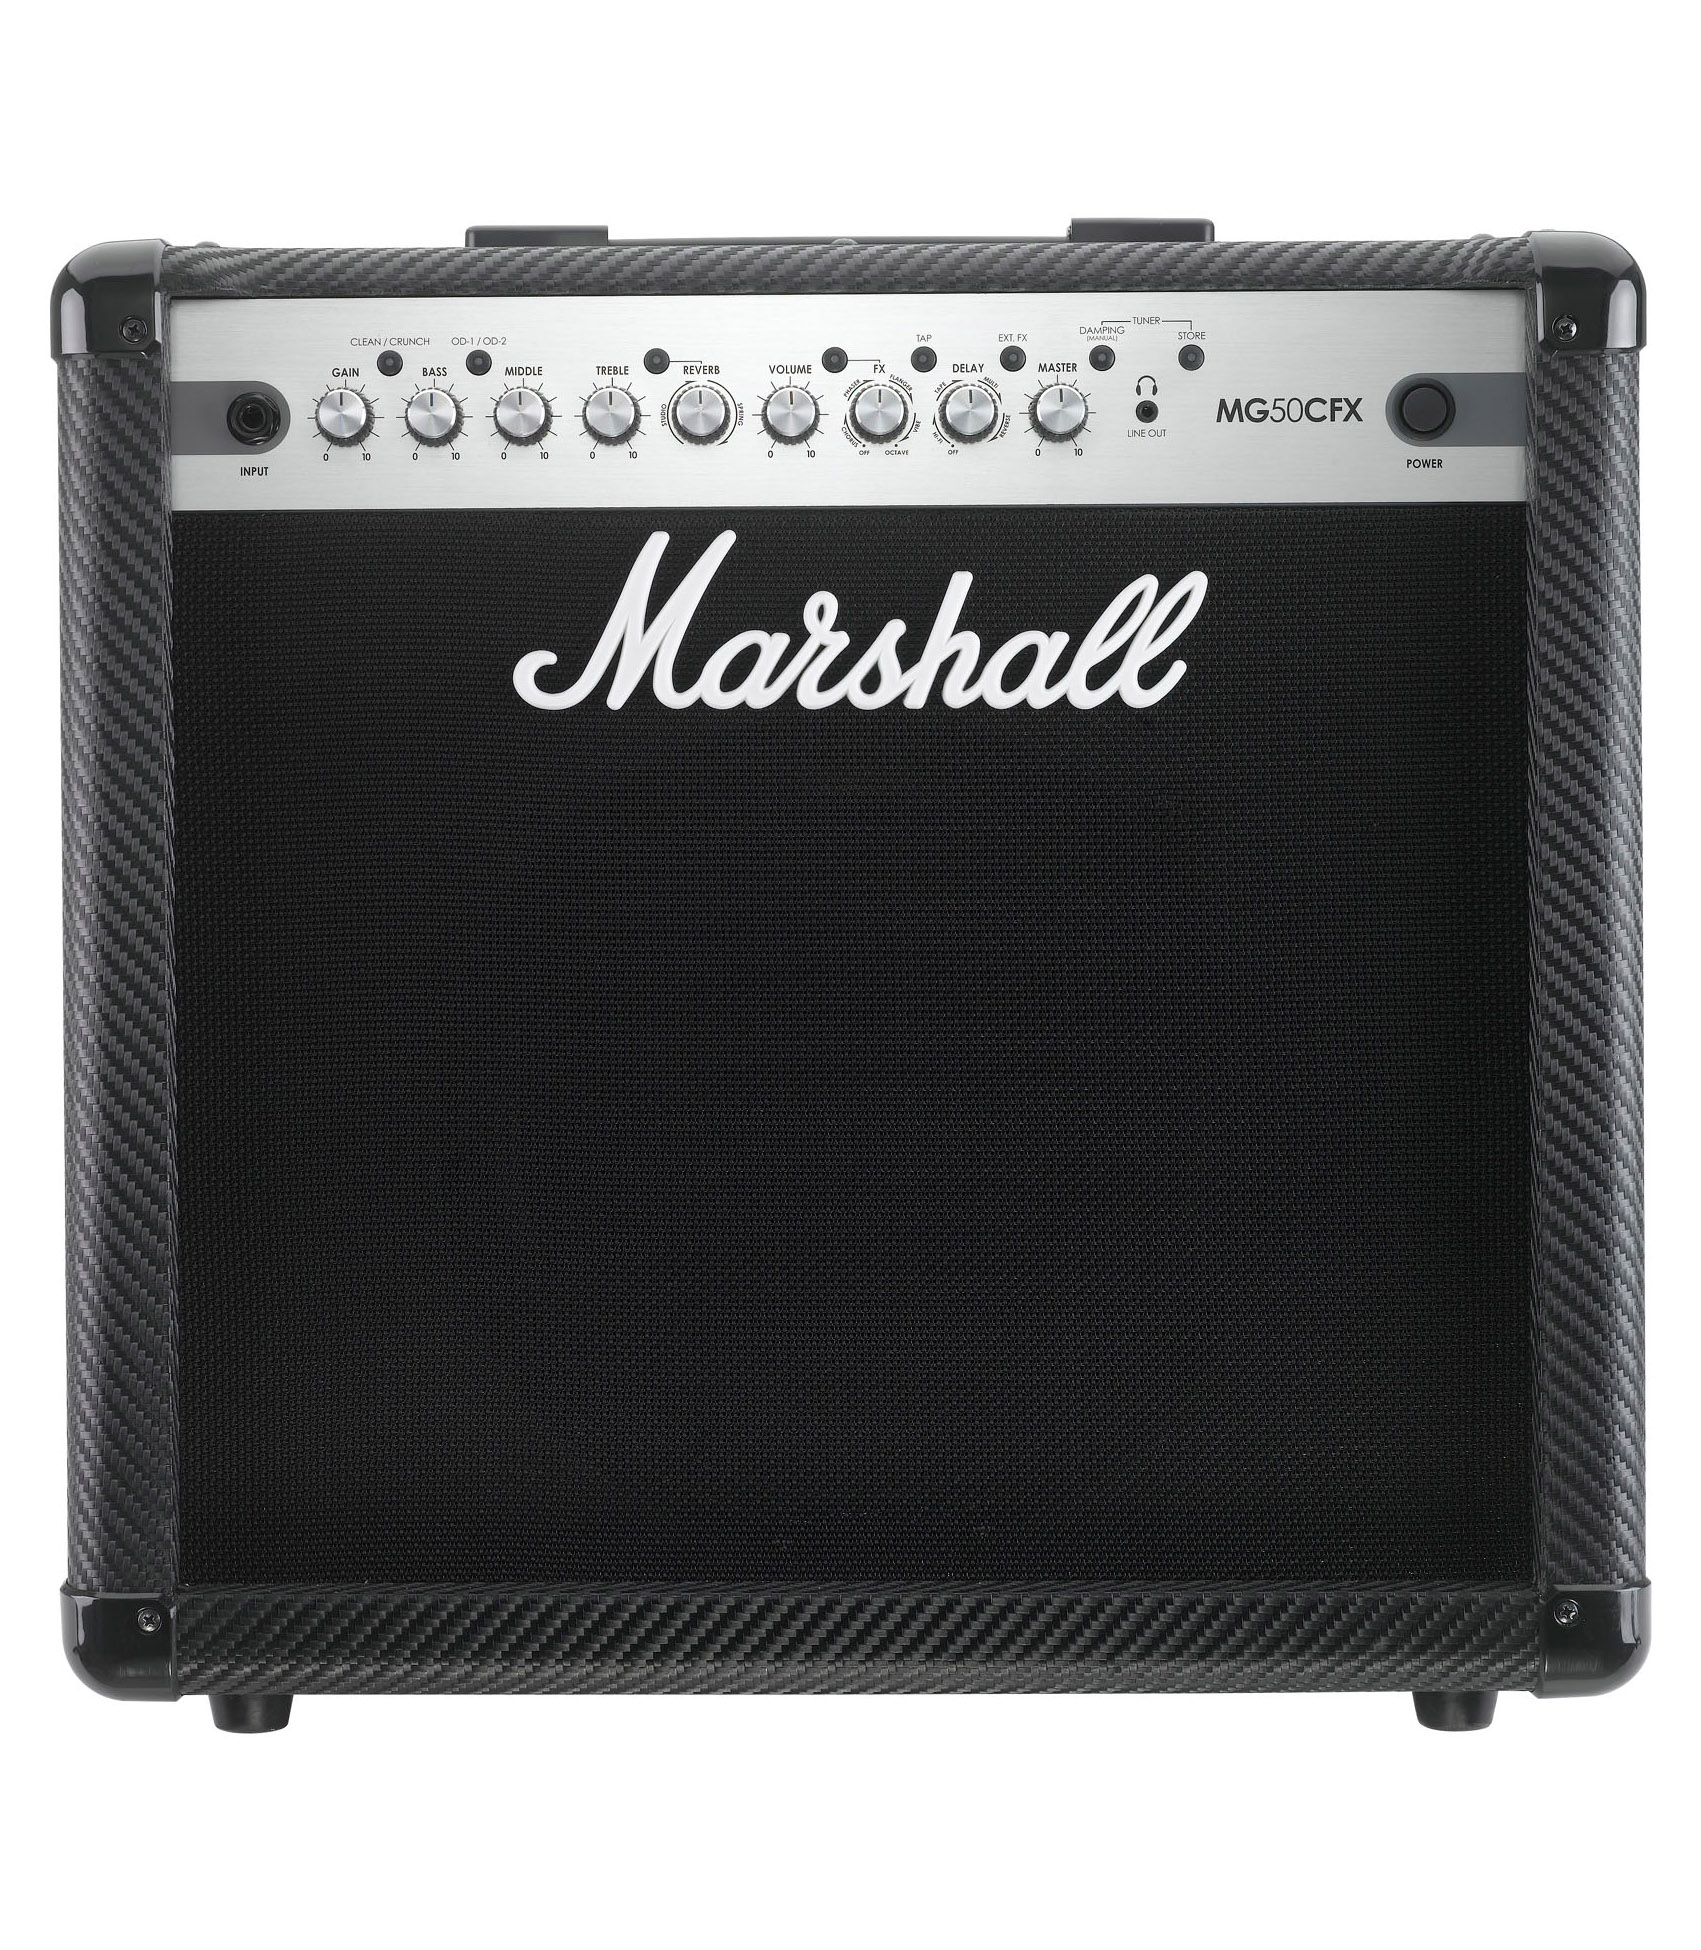 buy marshall mg50cfx solid state guitar amp 4 channe